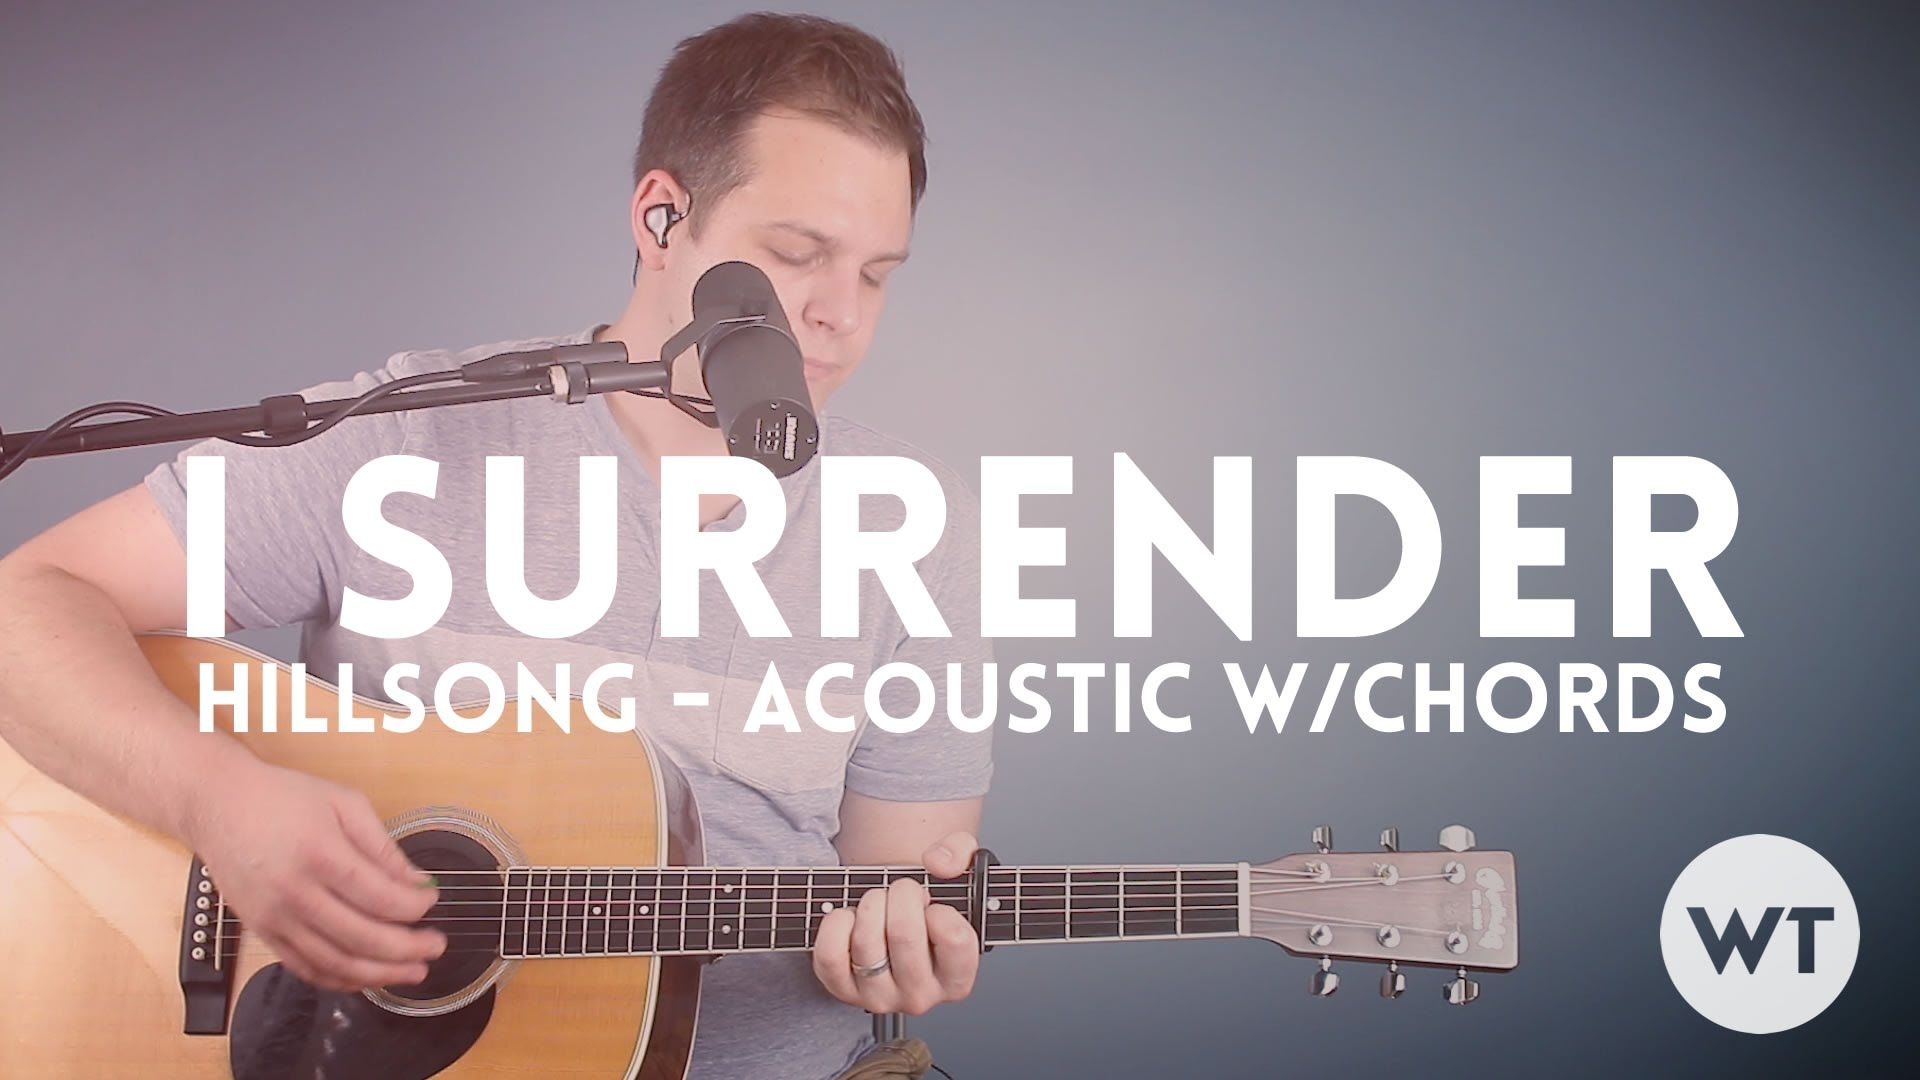 I Surrender Hillsong Acoustic With Chords Guitar Lessons Free